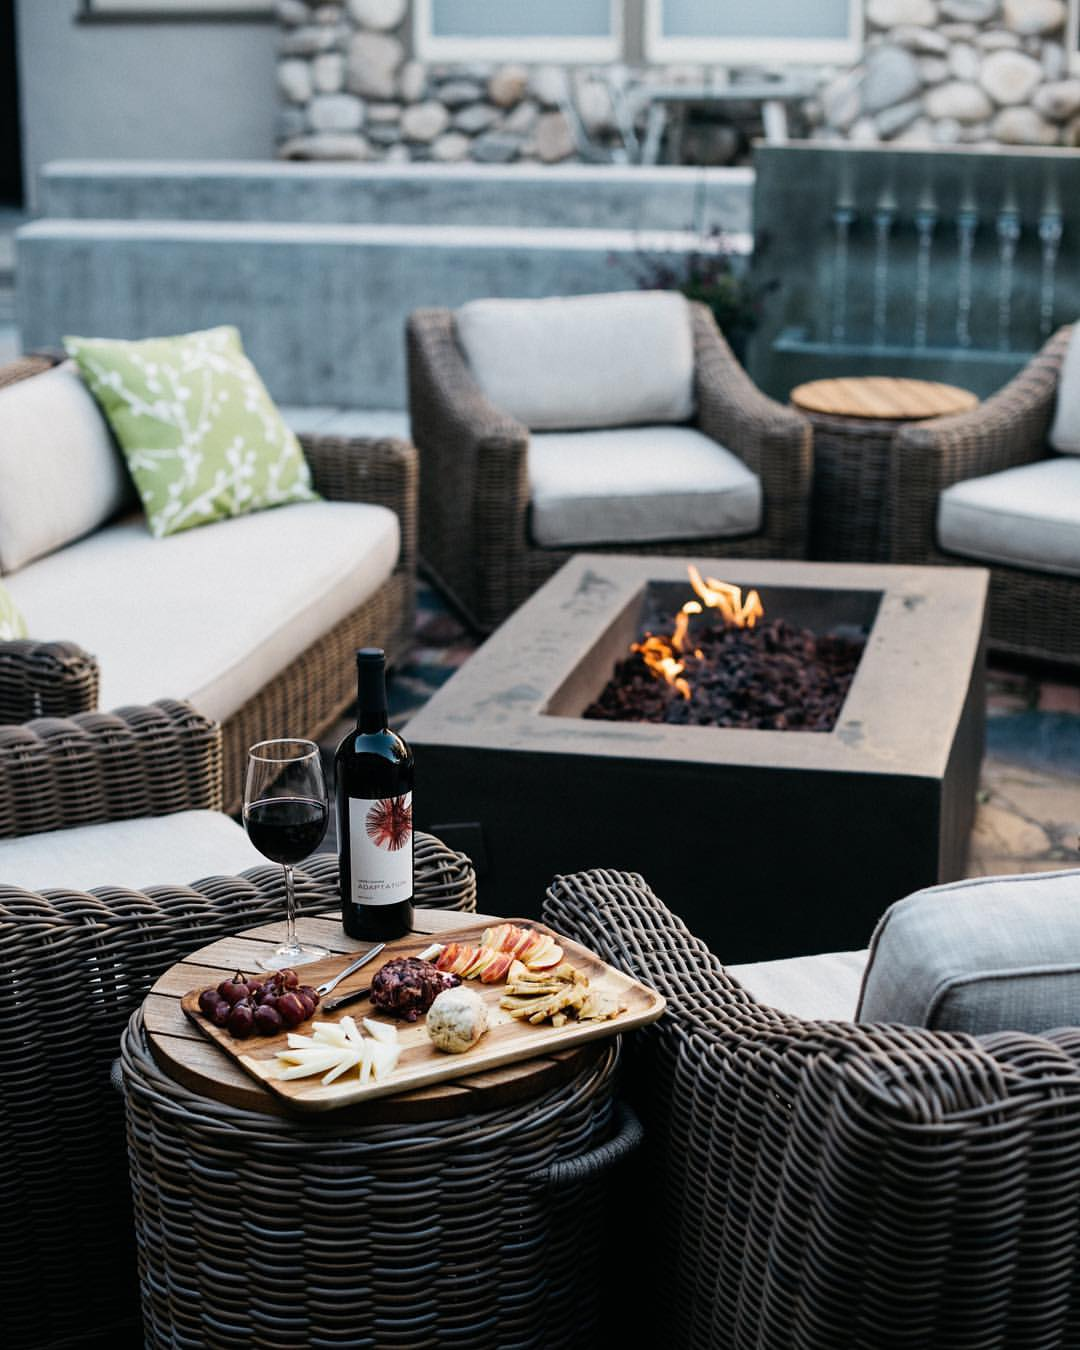 The Hideaway's outdoor fire pit